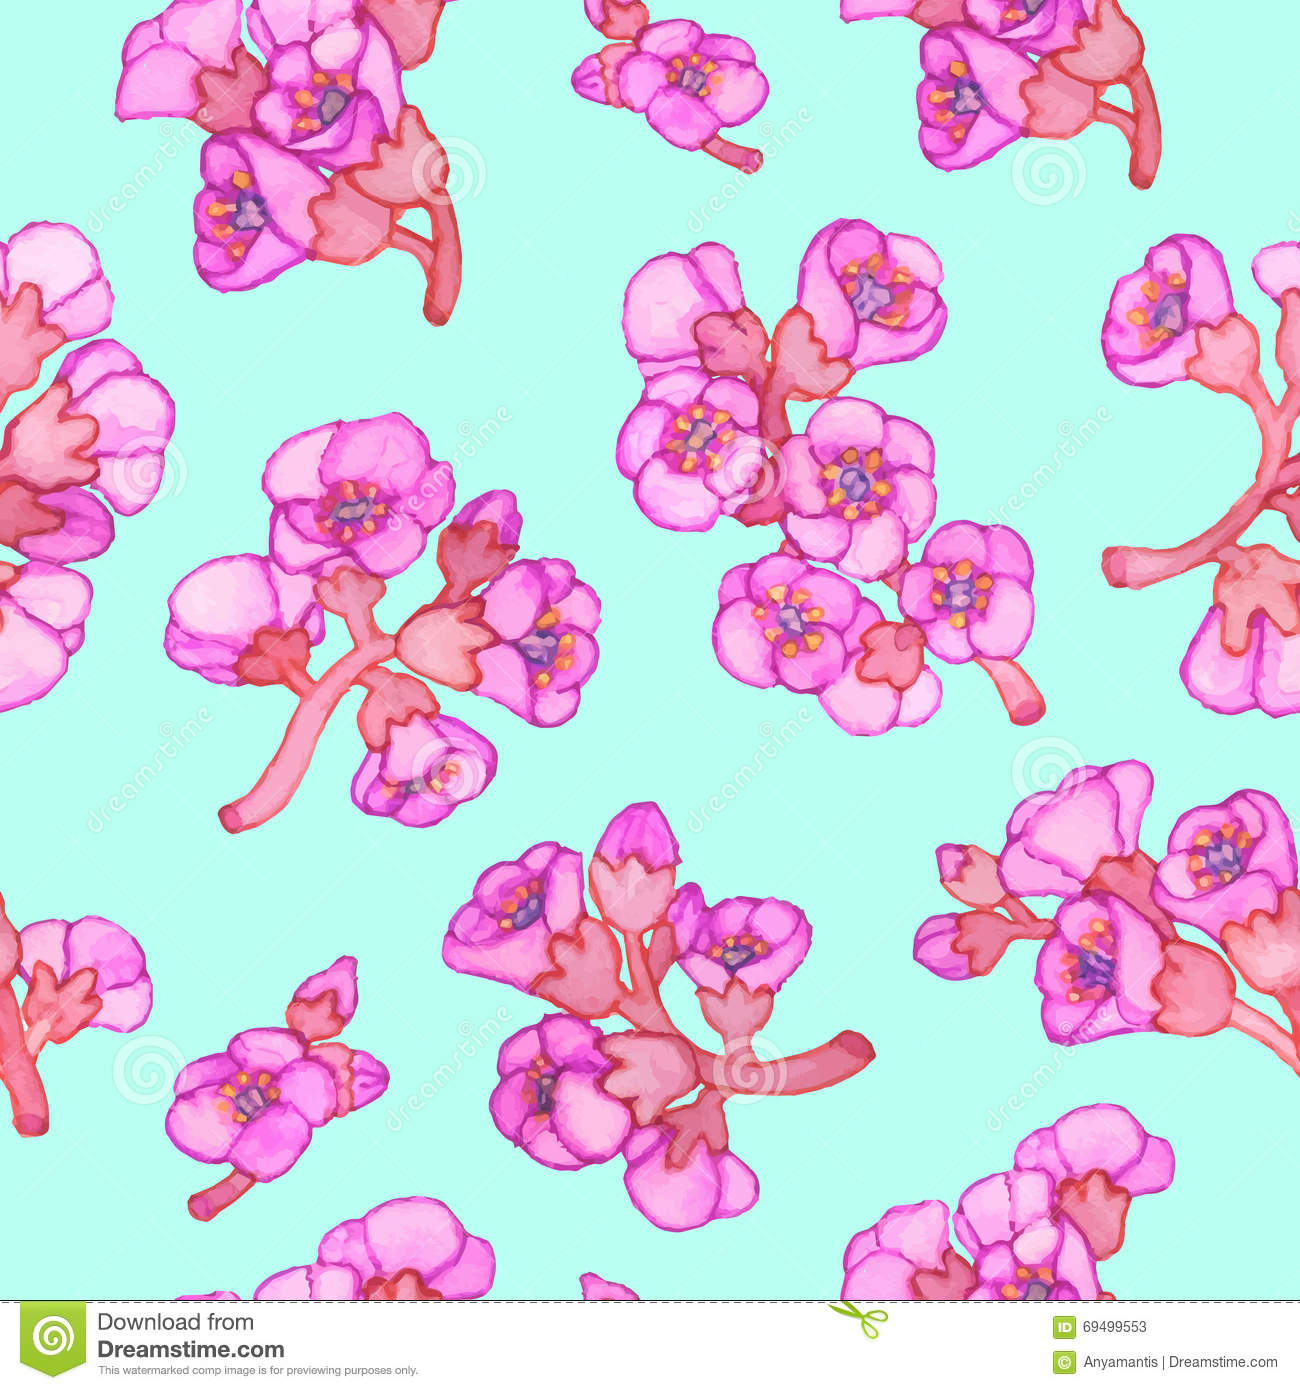 Pink Bergenia Crassifolia Blossom Seamless Pattern. Vector.